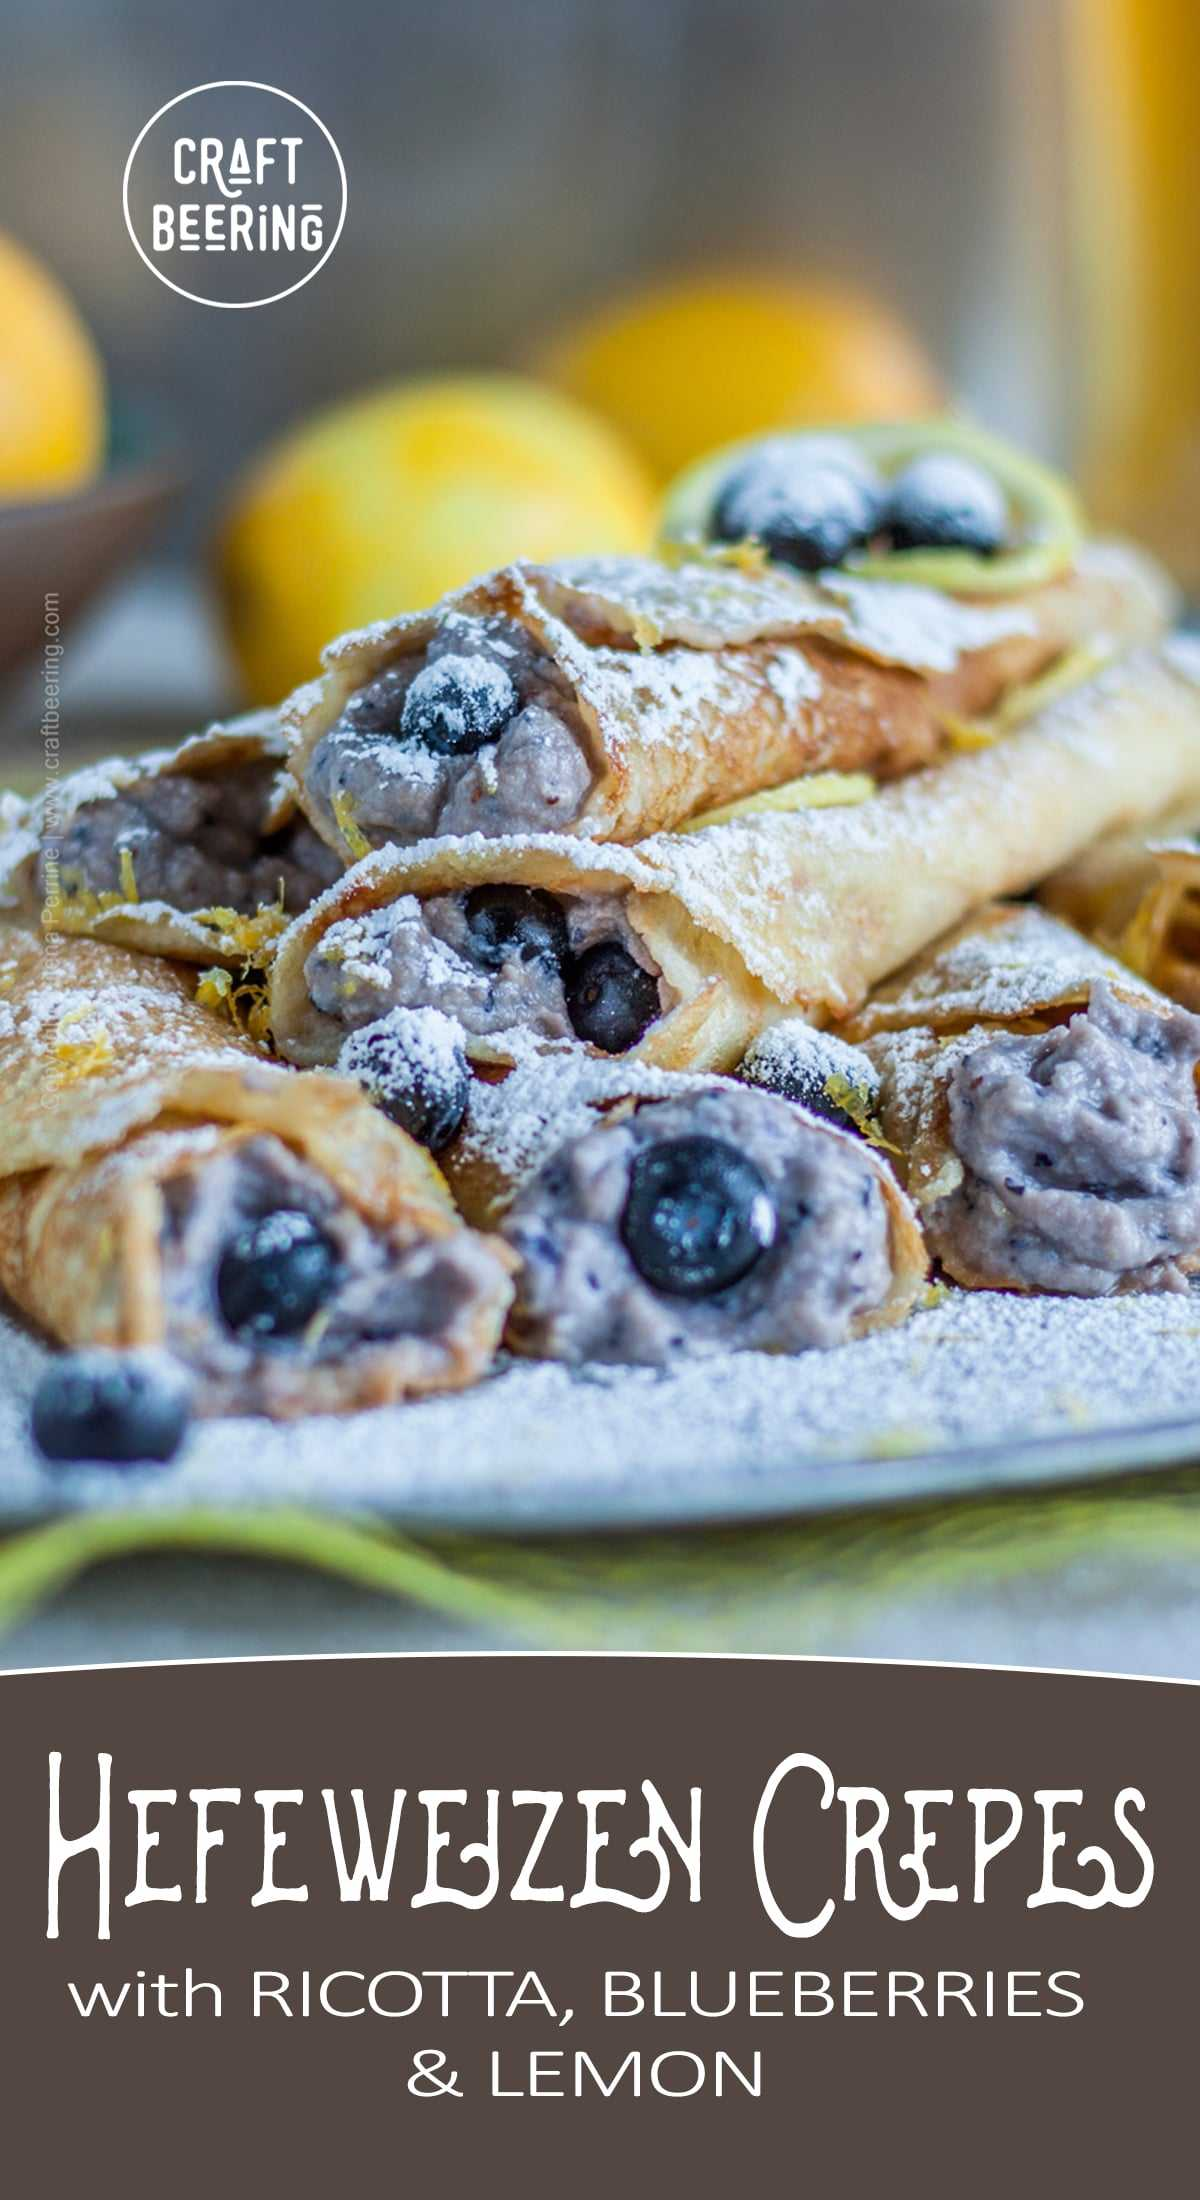 Beer crepes with Hefeweizen batter and ricotta, blueberries and lemon filling. #crepes #beercrepes #beerbatter #cookingwithbeer #crepebatter #crepesrecipe